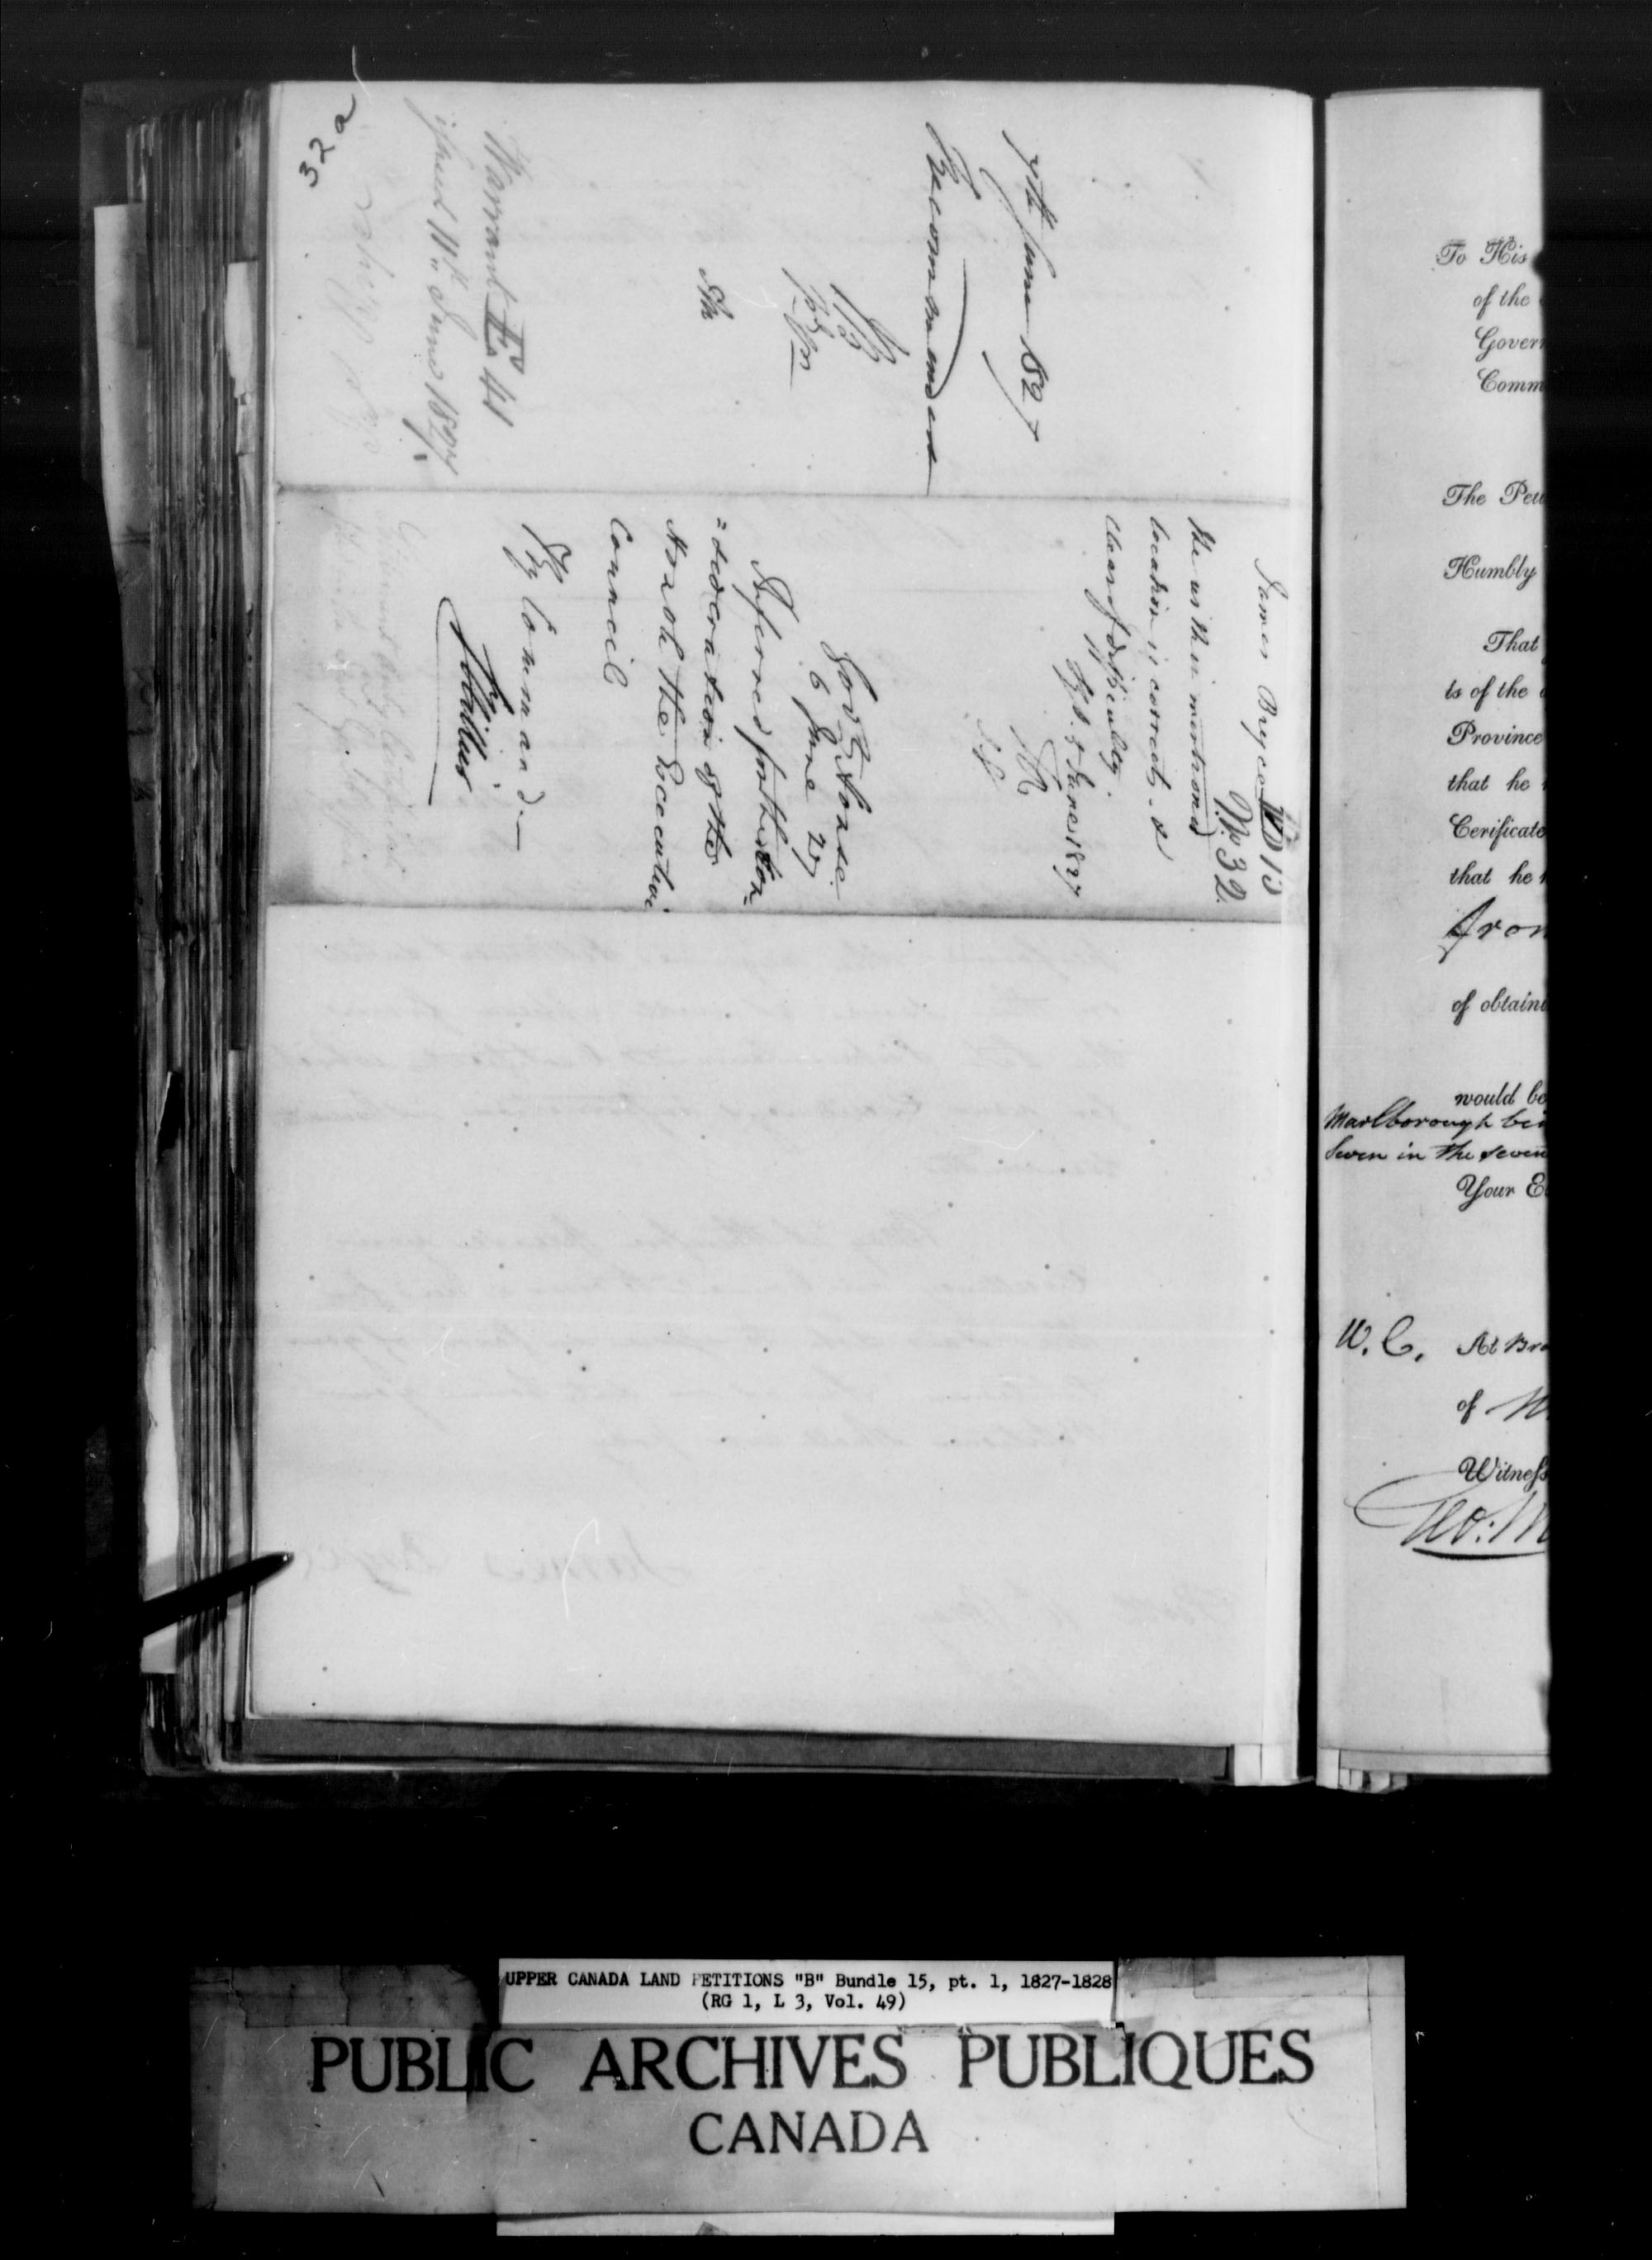 Title: Upper Canada Land Petitions (1763-1865) - Mikan Number: 205131 - Microform: c-1628